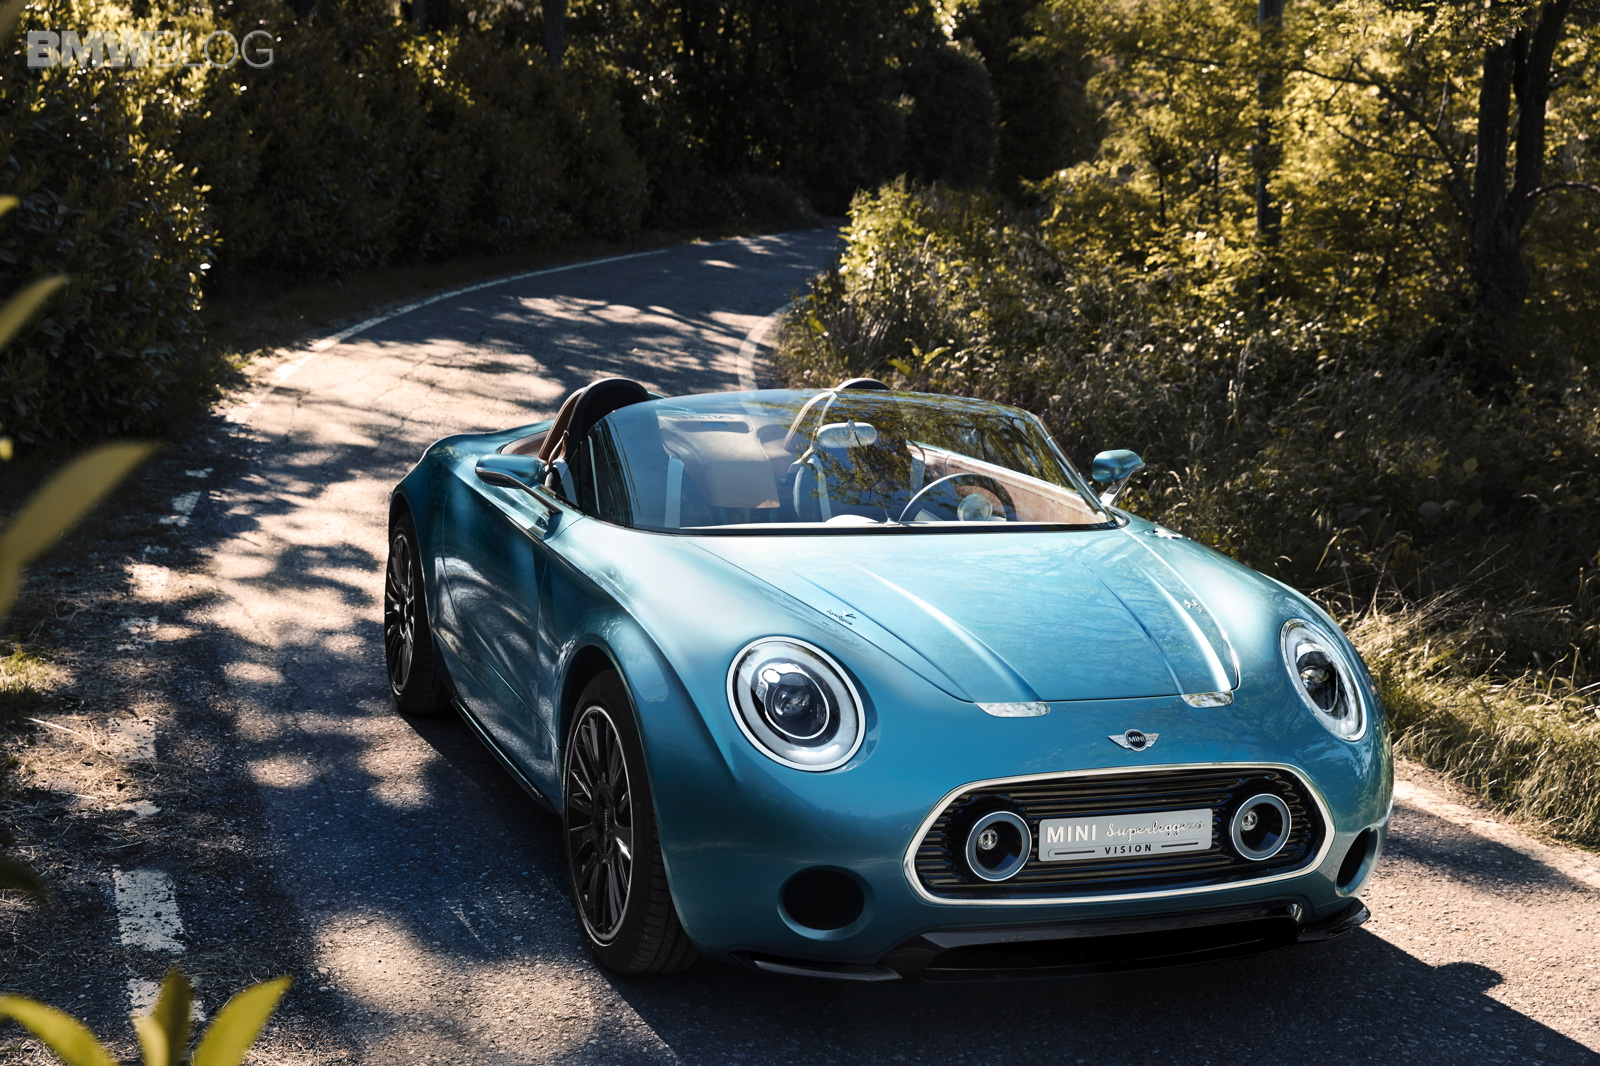 MINI SUPERLEGGERA VISION photos 27